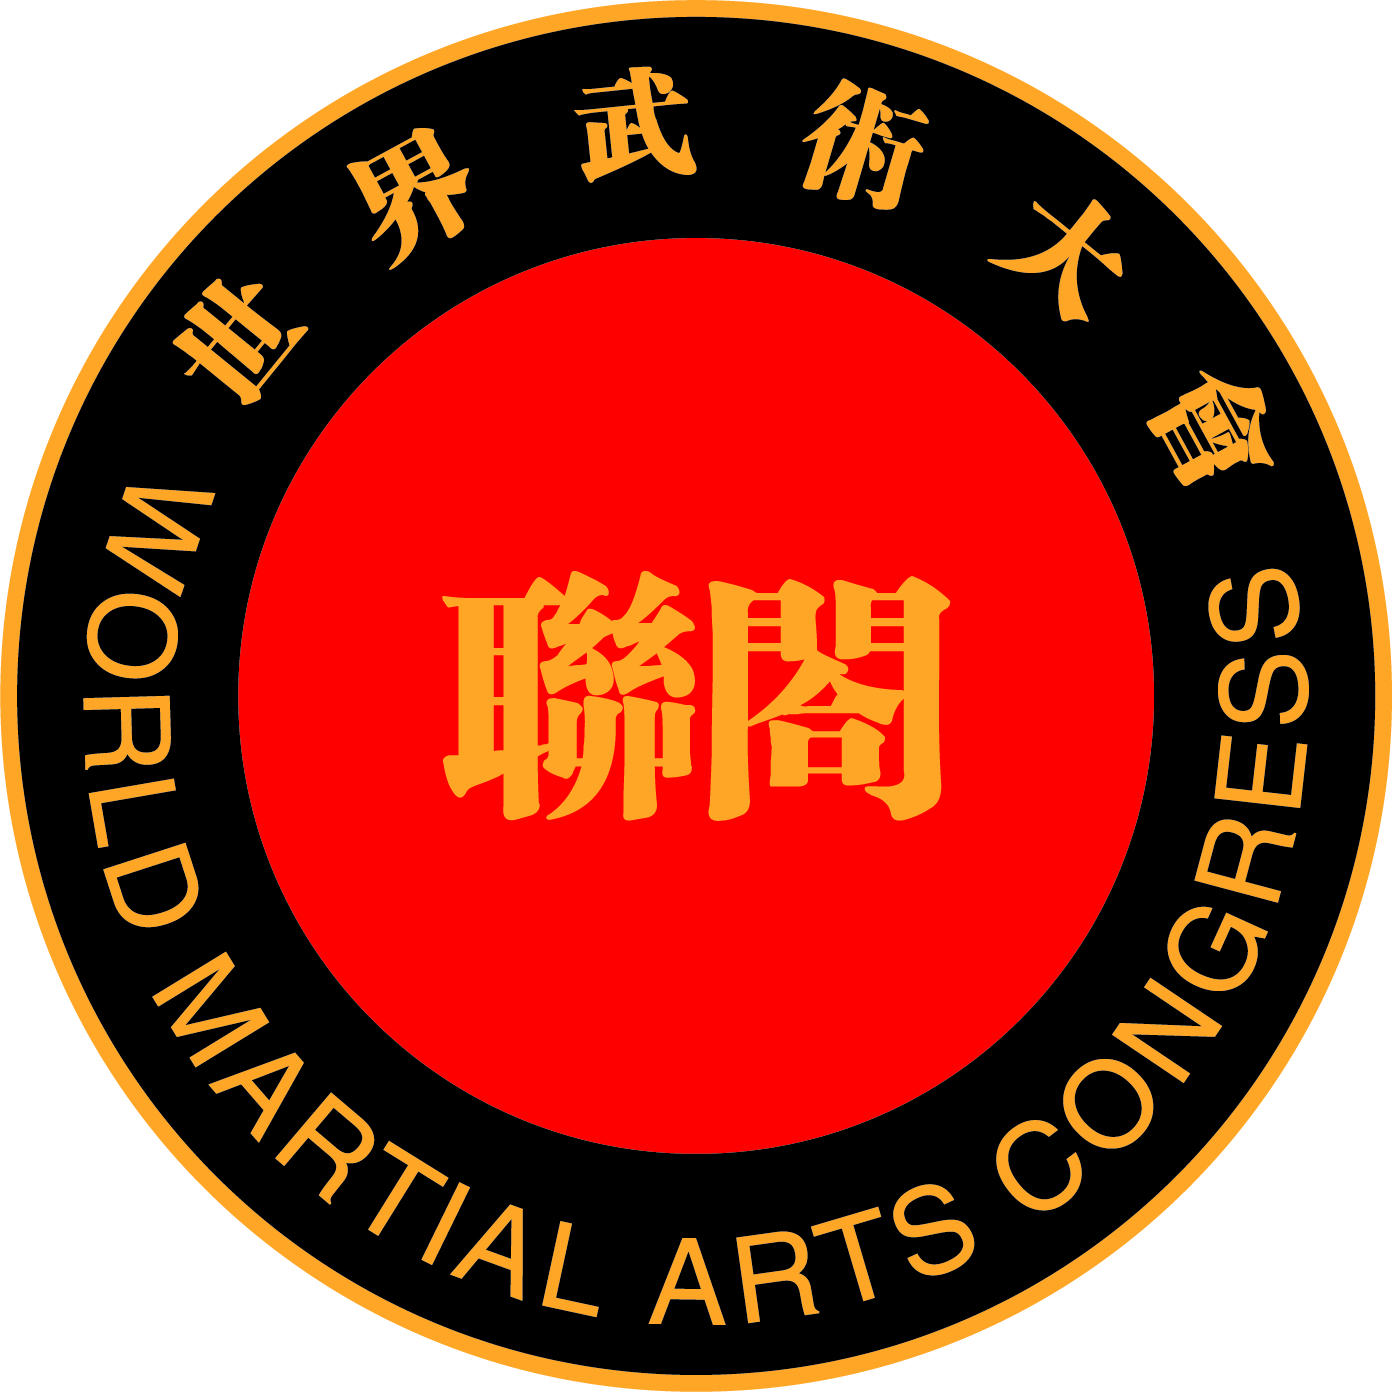 World Martial Arts Congress